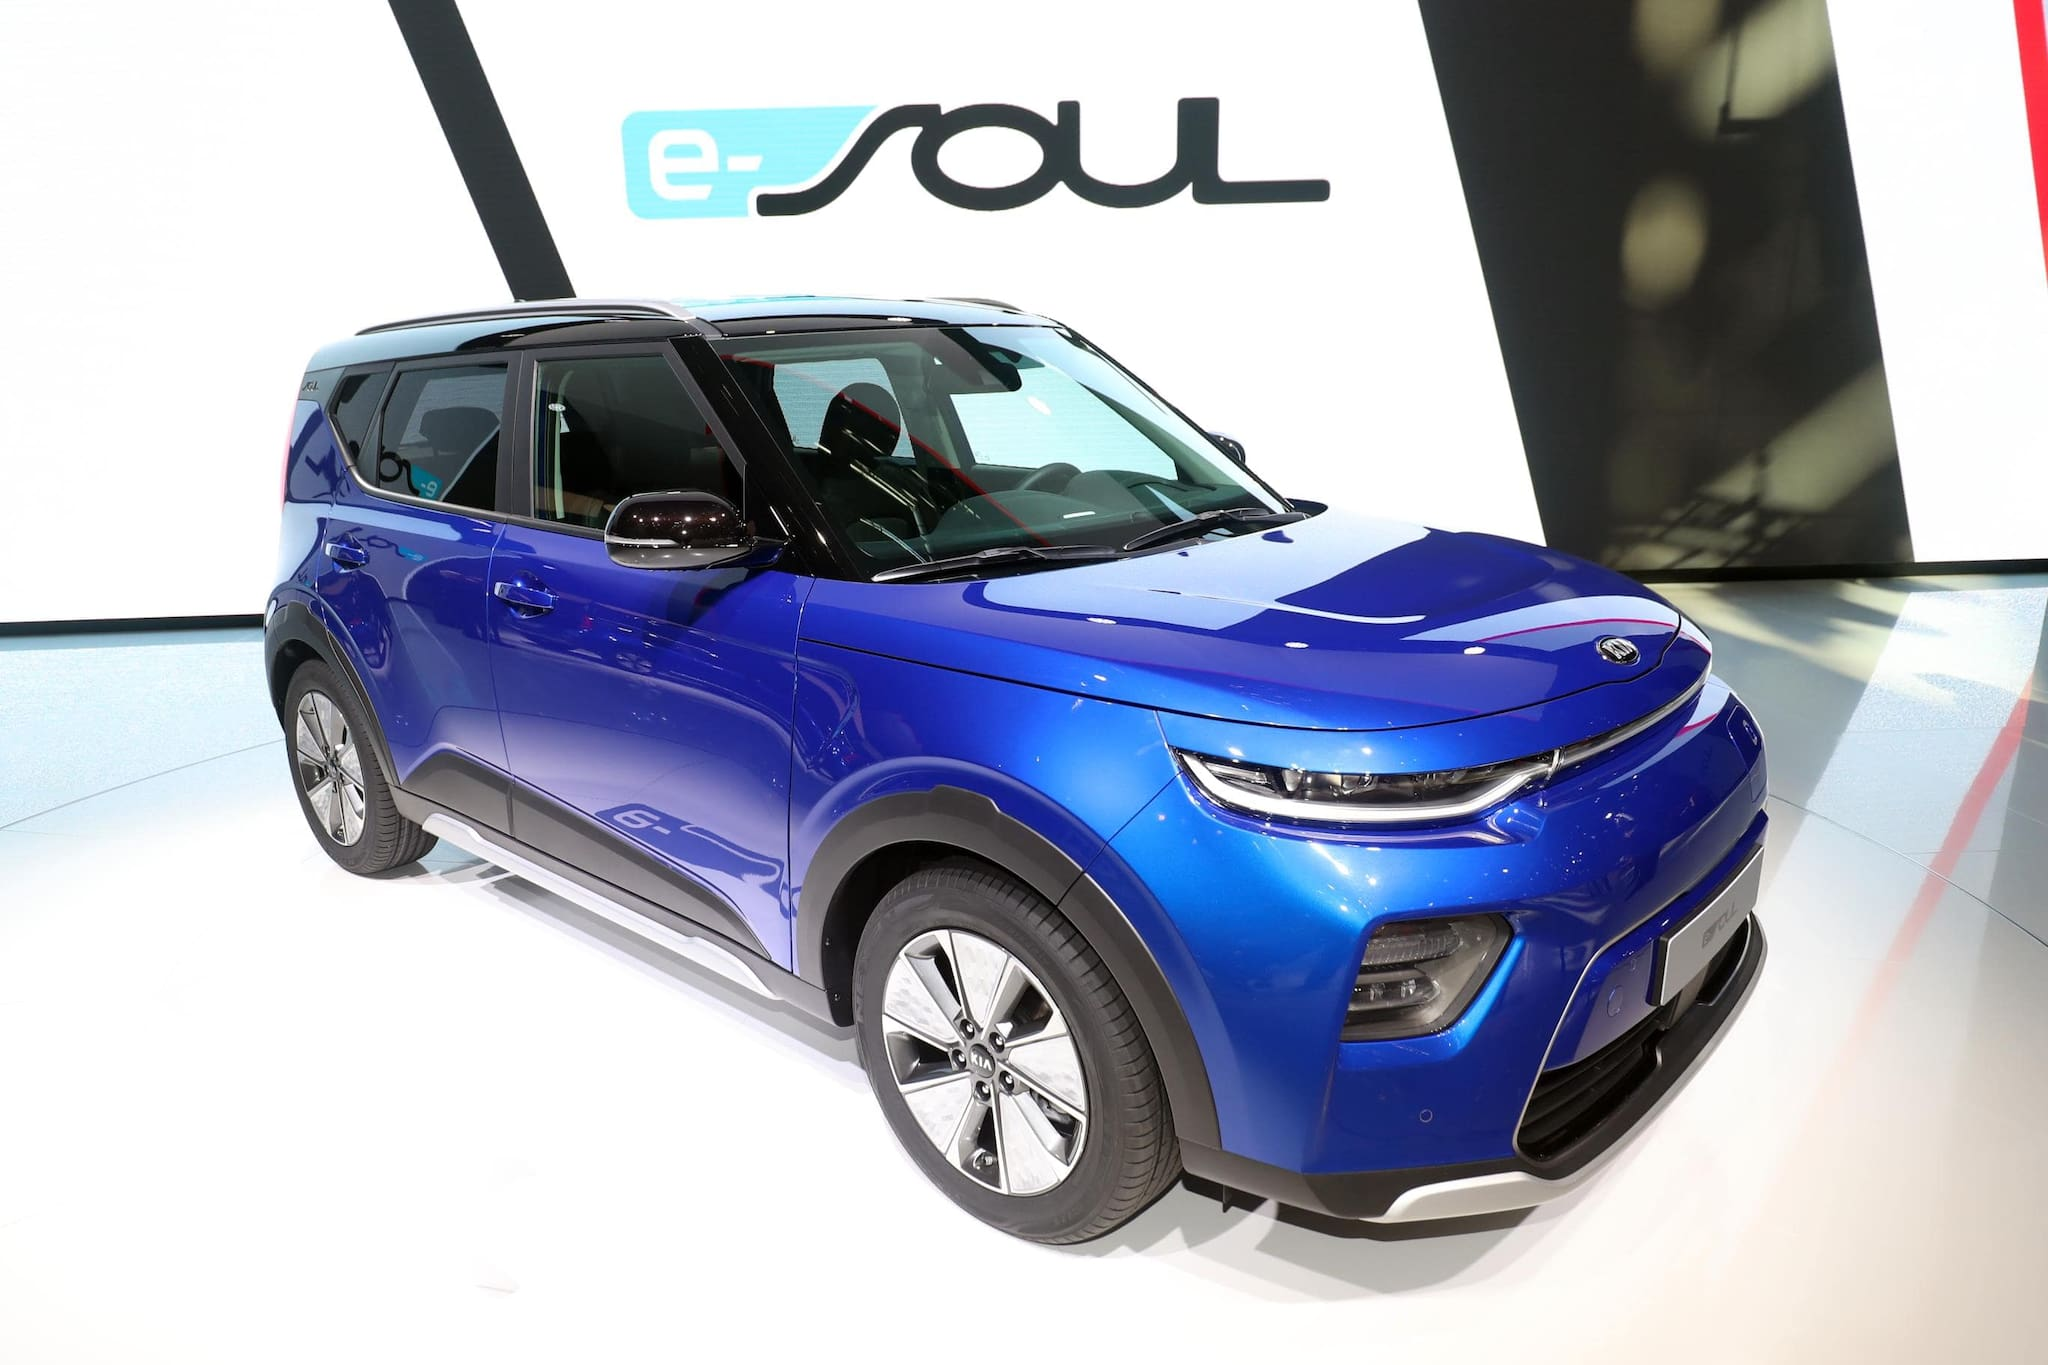 Kia ramps up EVs by 2020